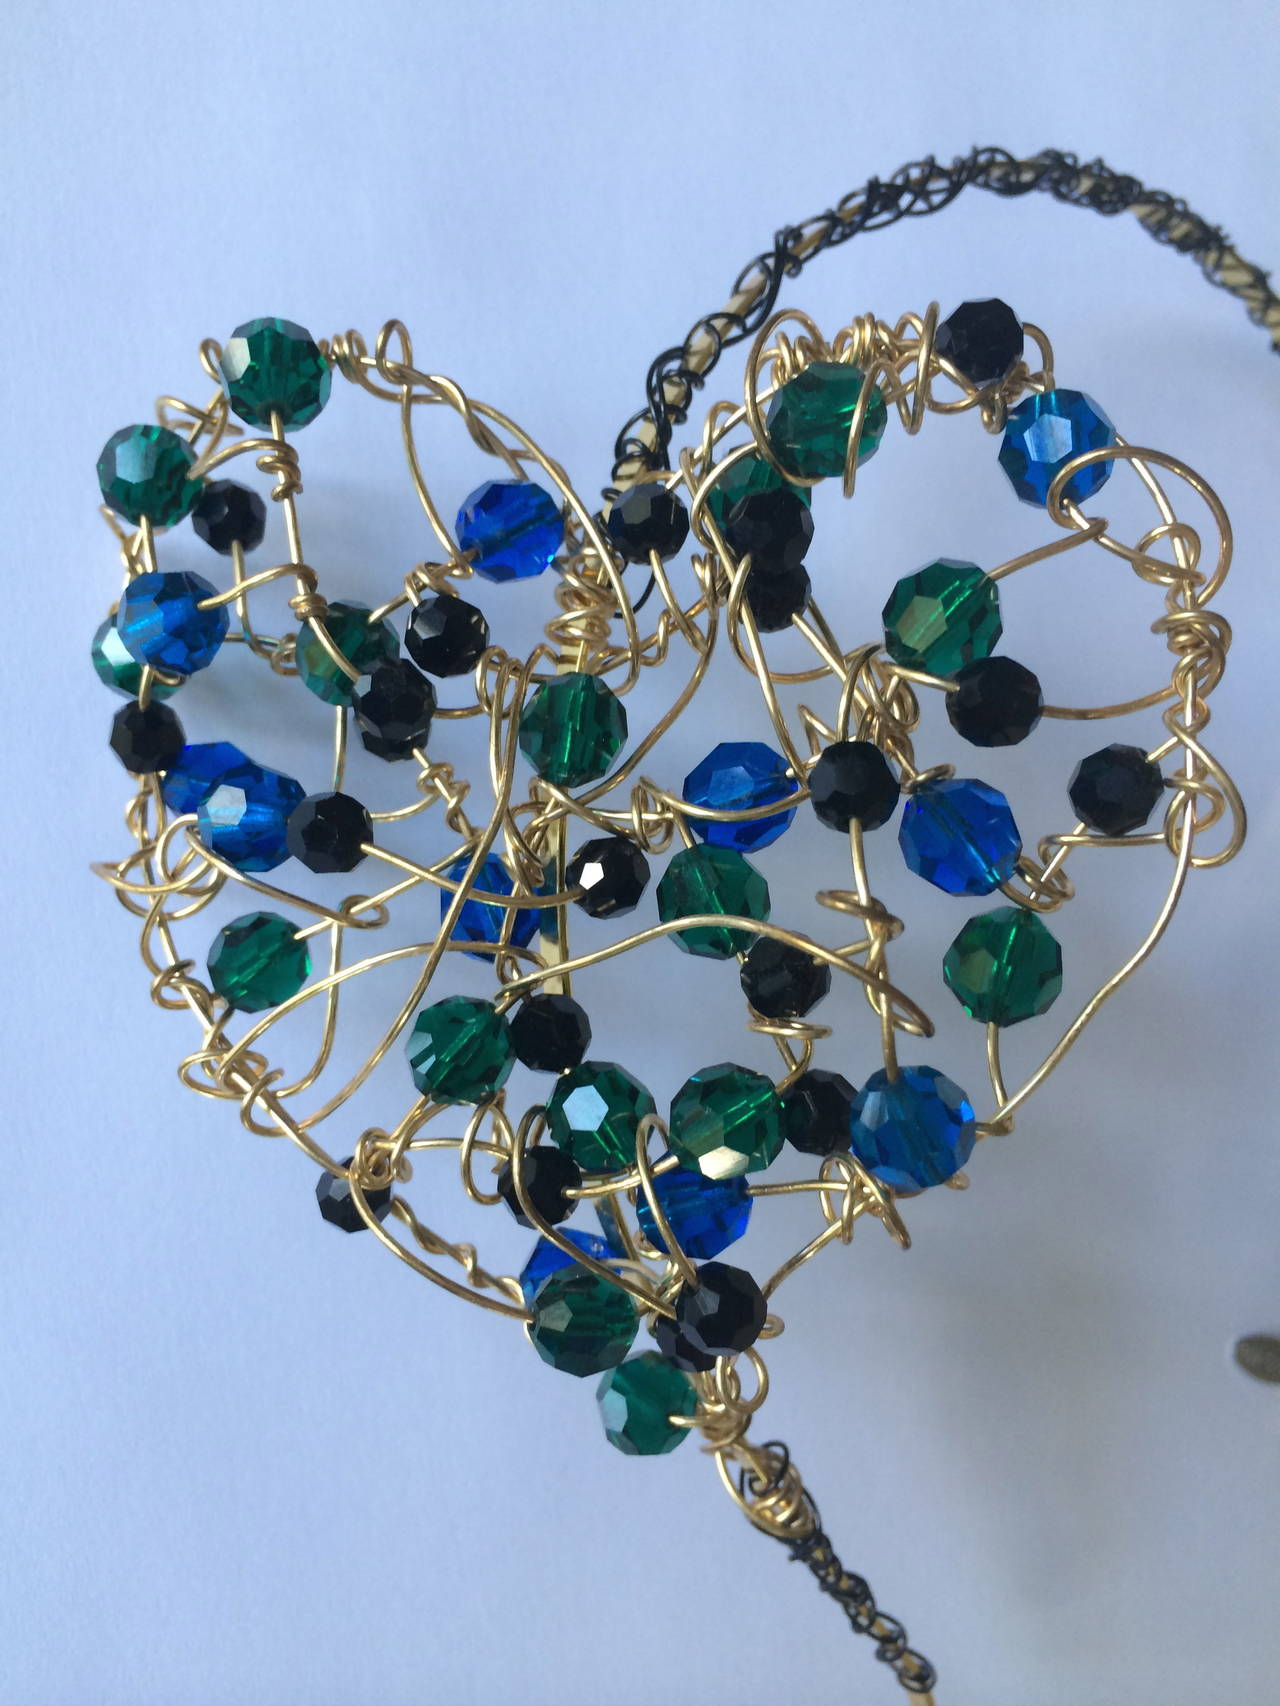 Sculptural heart headband. Handmade with Swarovski crystal beads in hues of royal blue, emerald green and jet black.